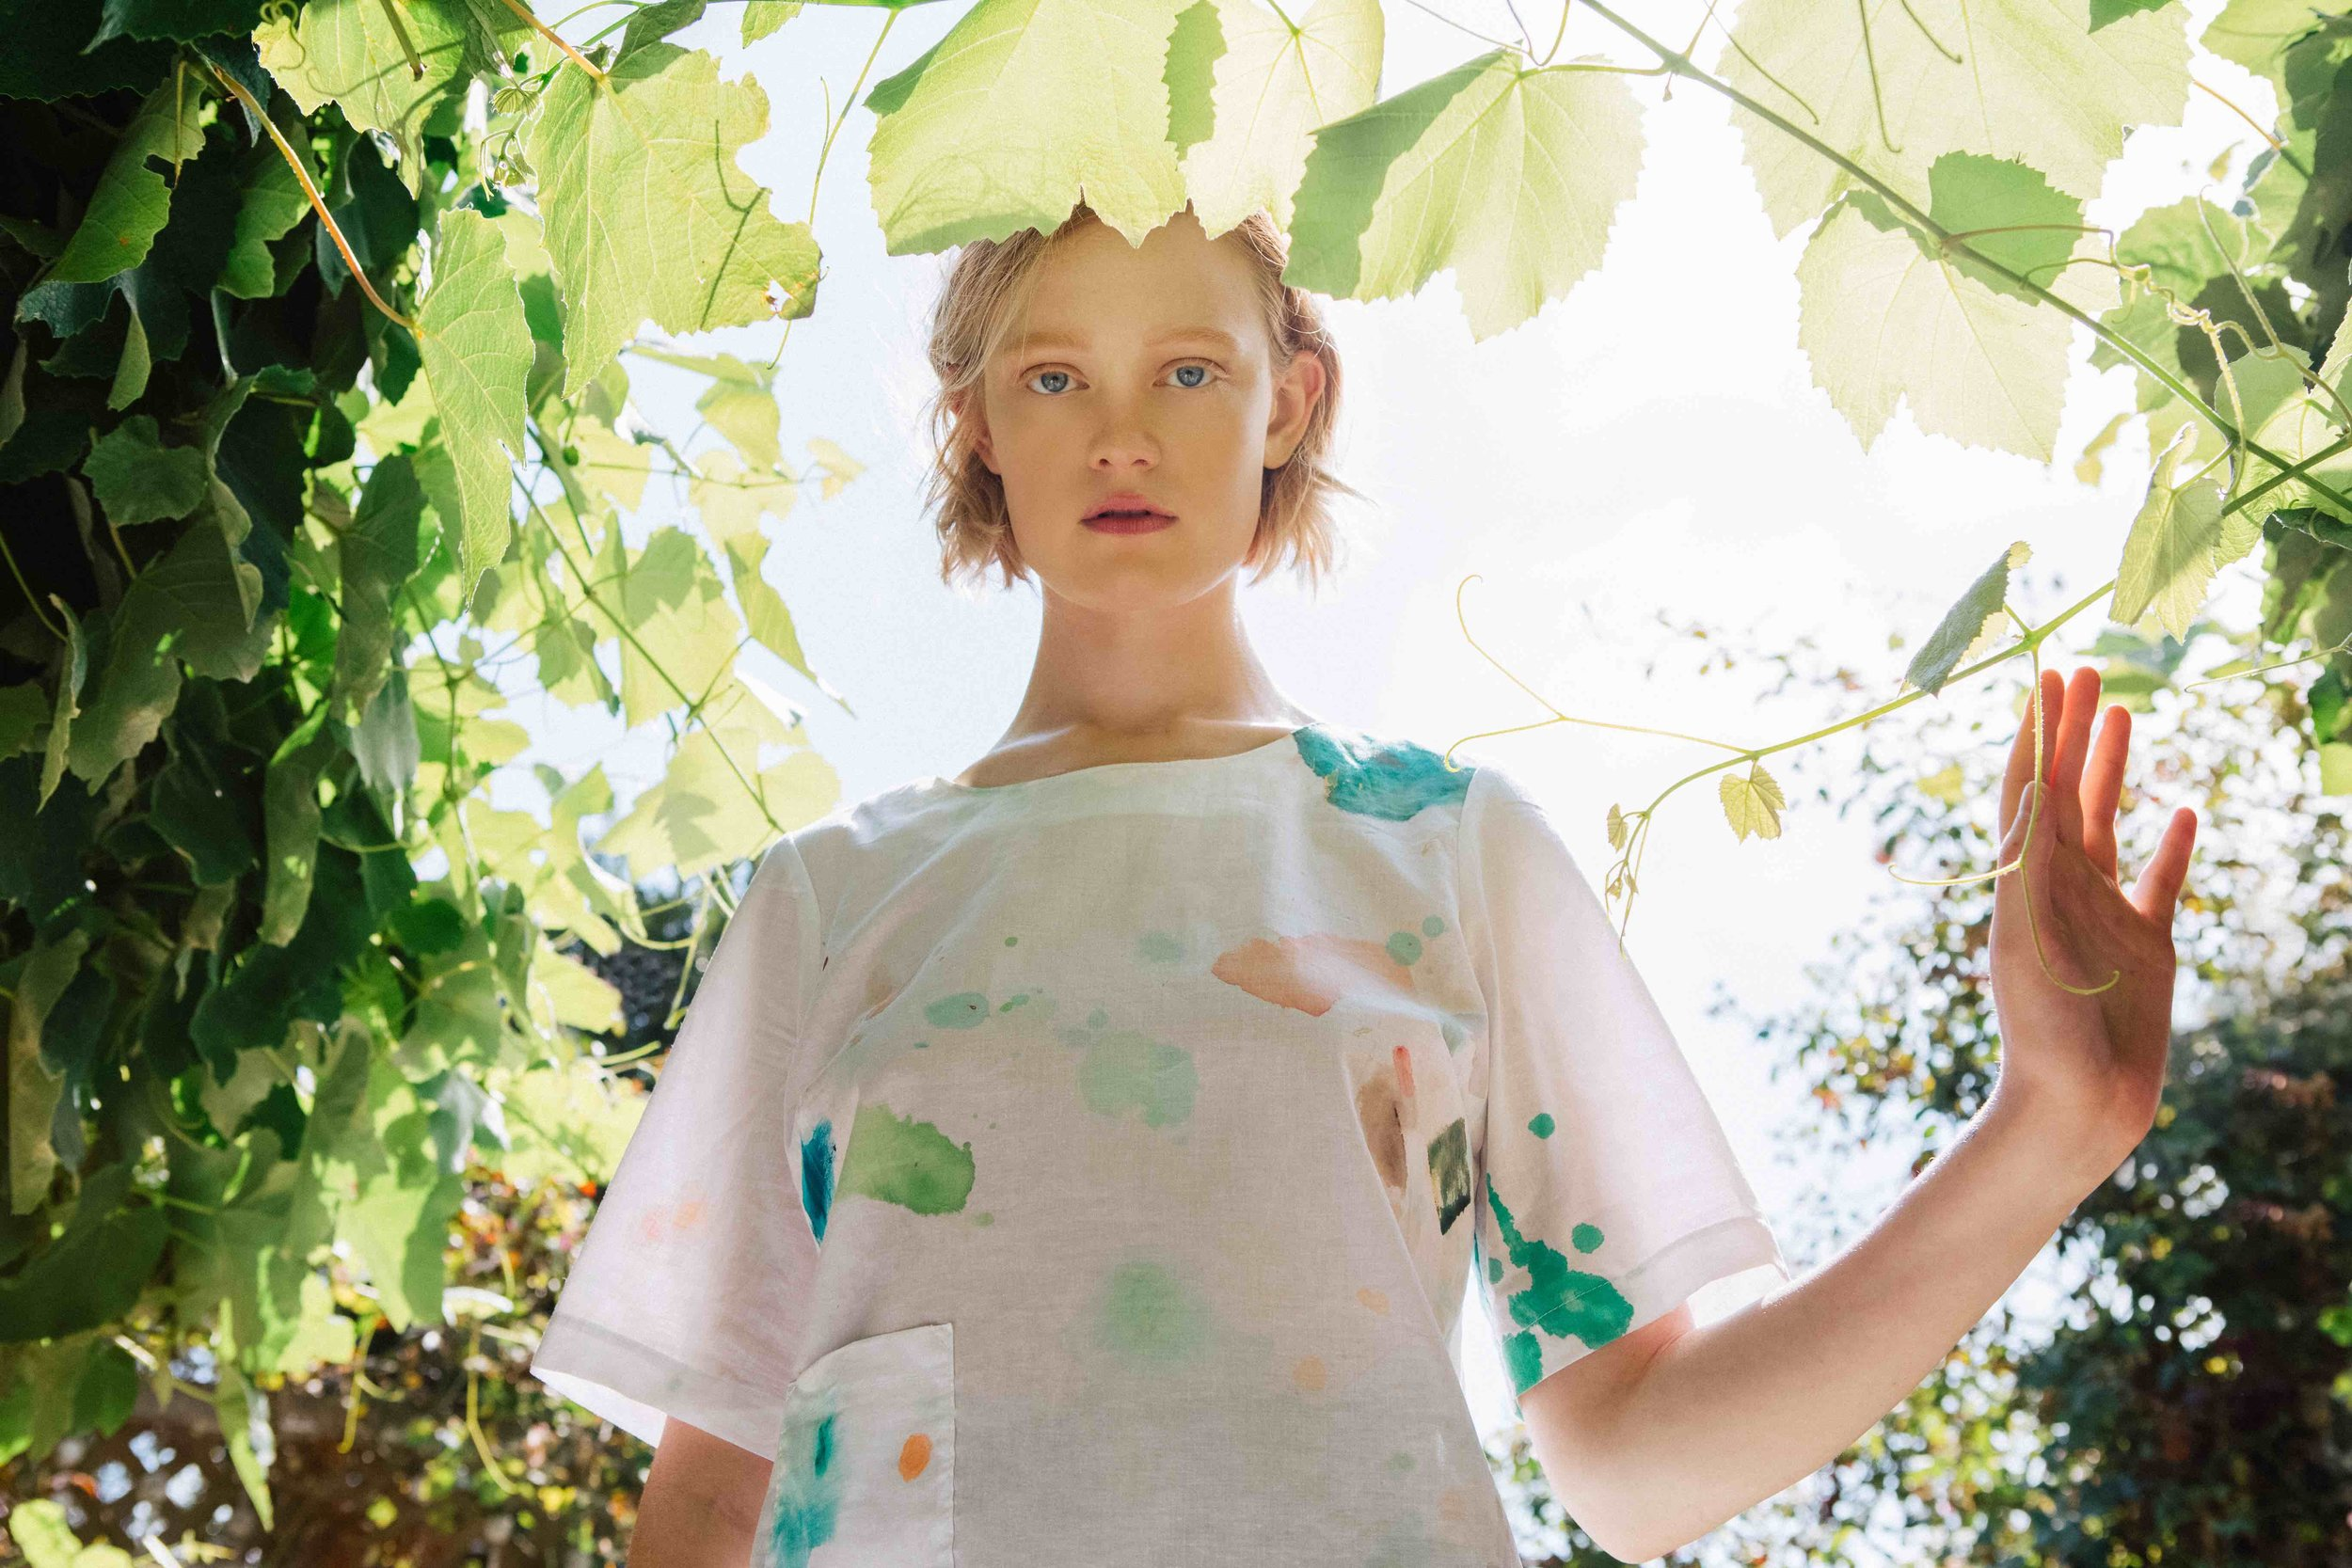 See the full photoshoot of the Painter's blouse  ,  photo by Joy Newell